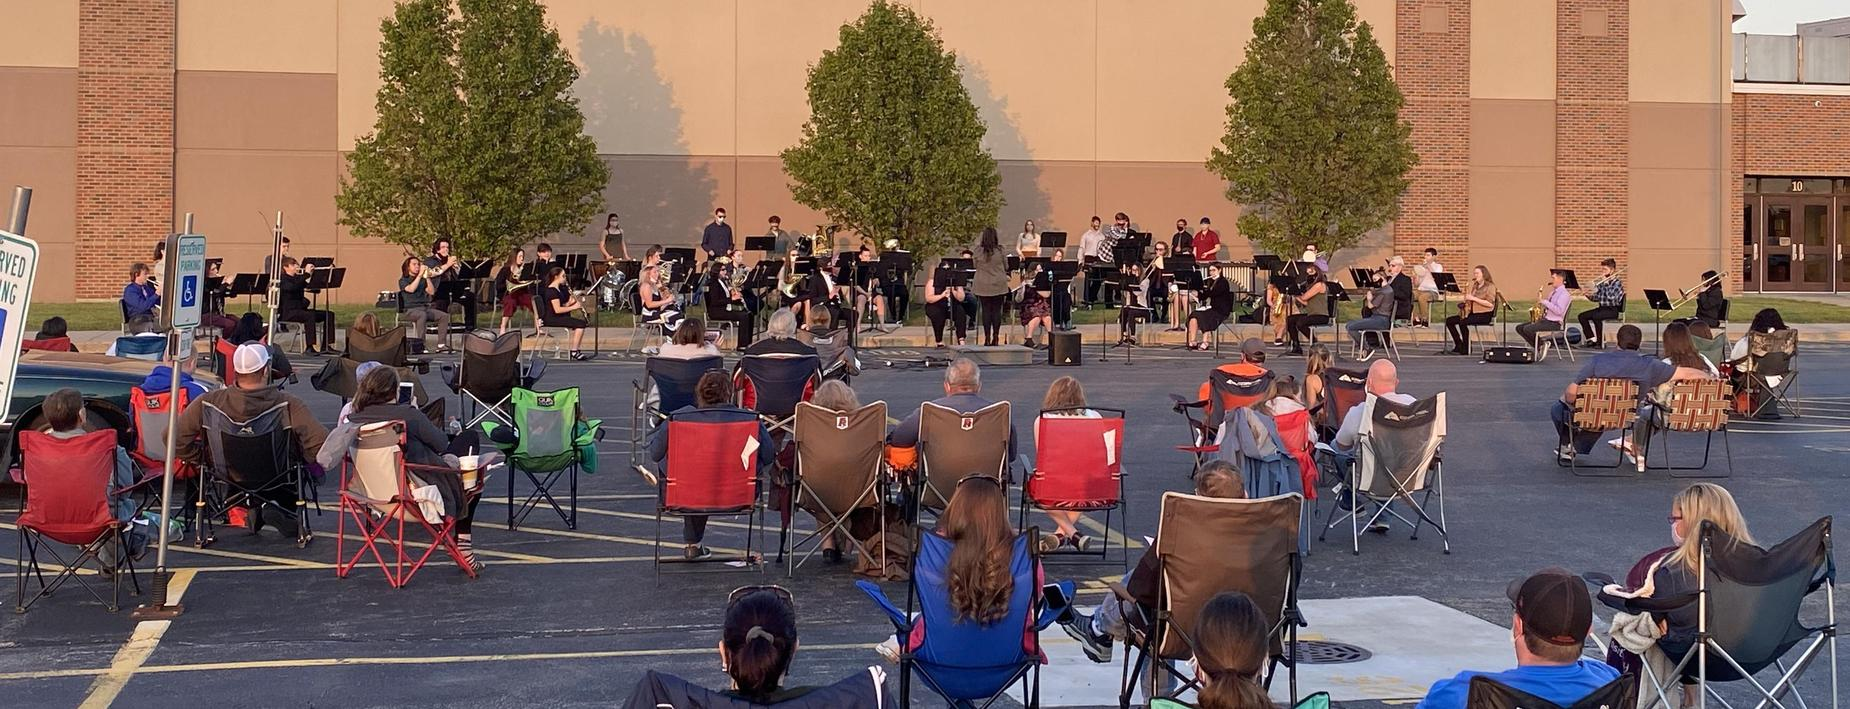 HS Band performance in May